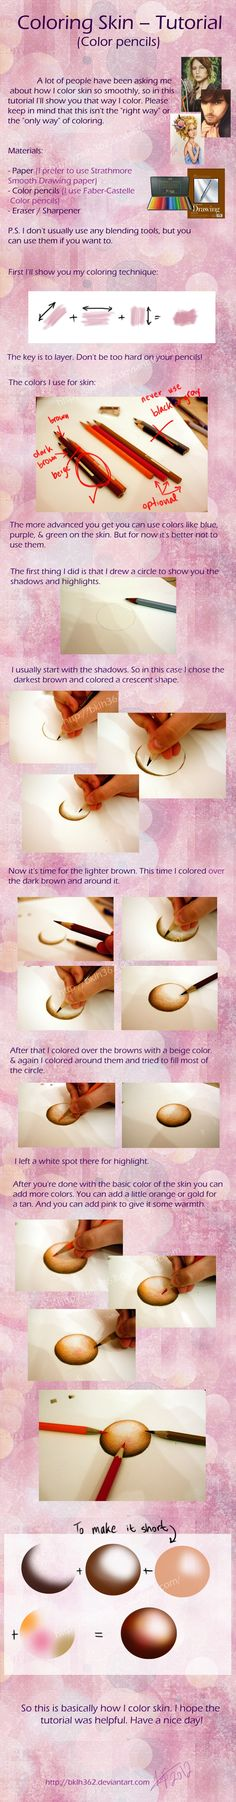 Coloring Skin (Color pencils tutorial) by BKLH362.deviantart.com on @deviantART